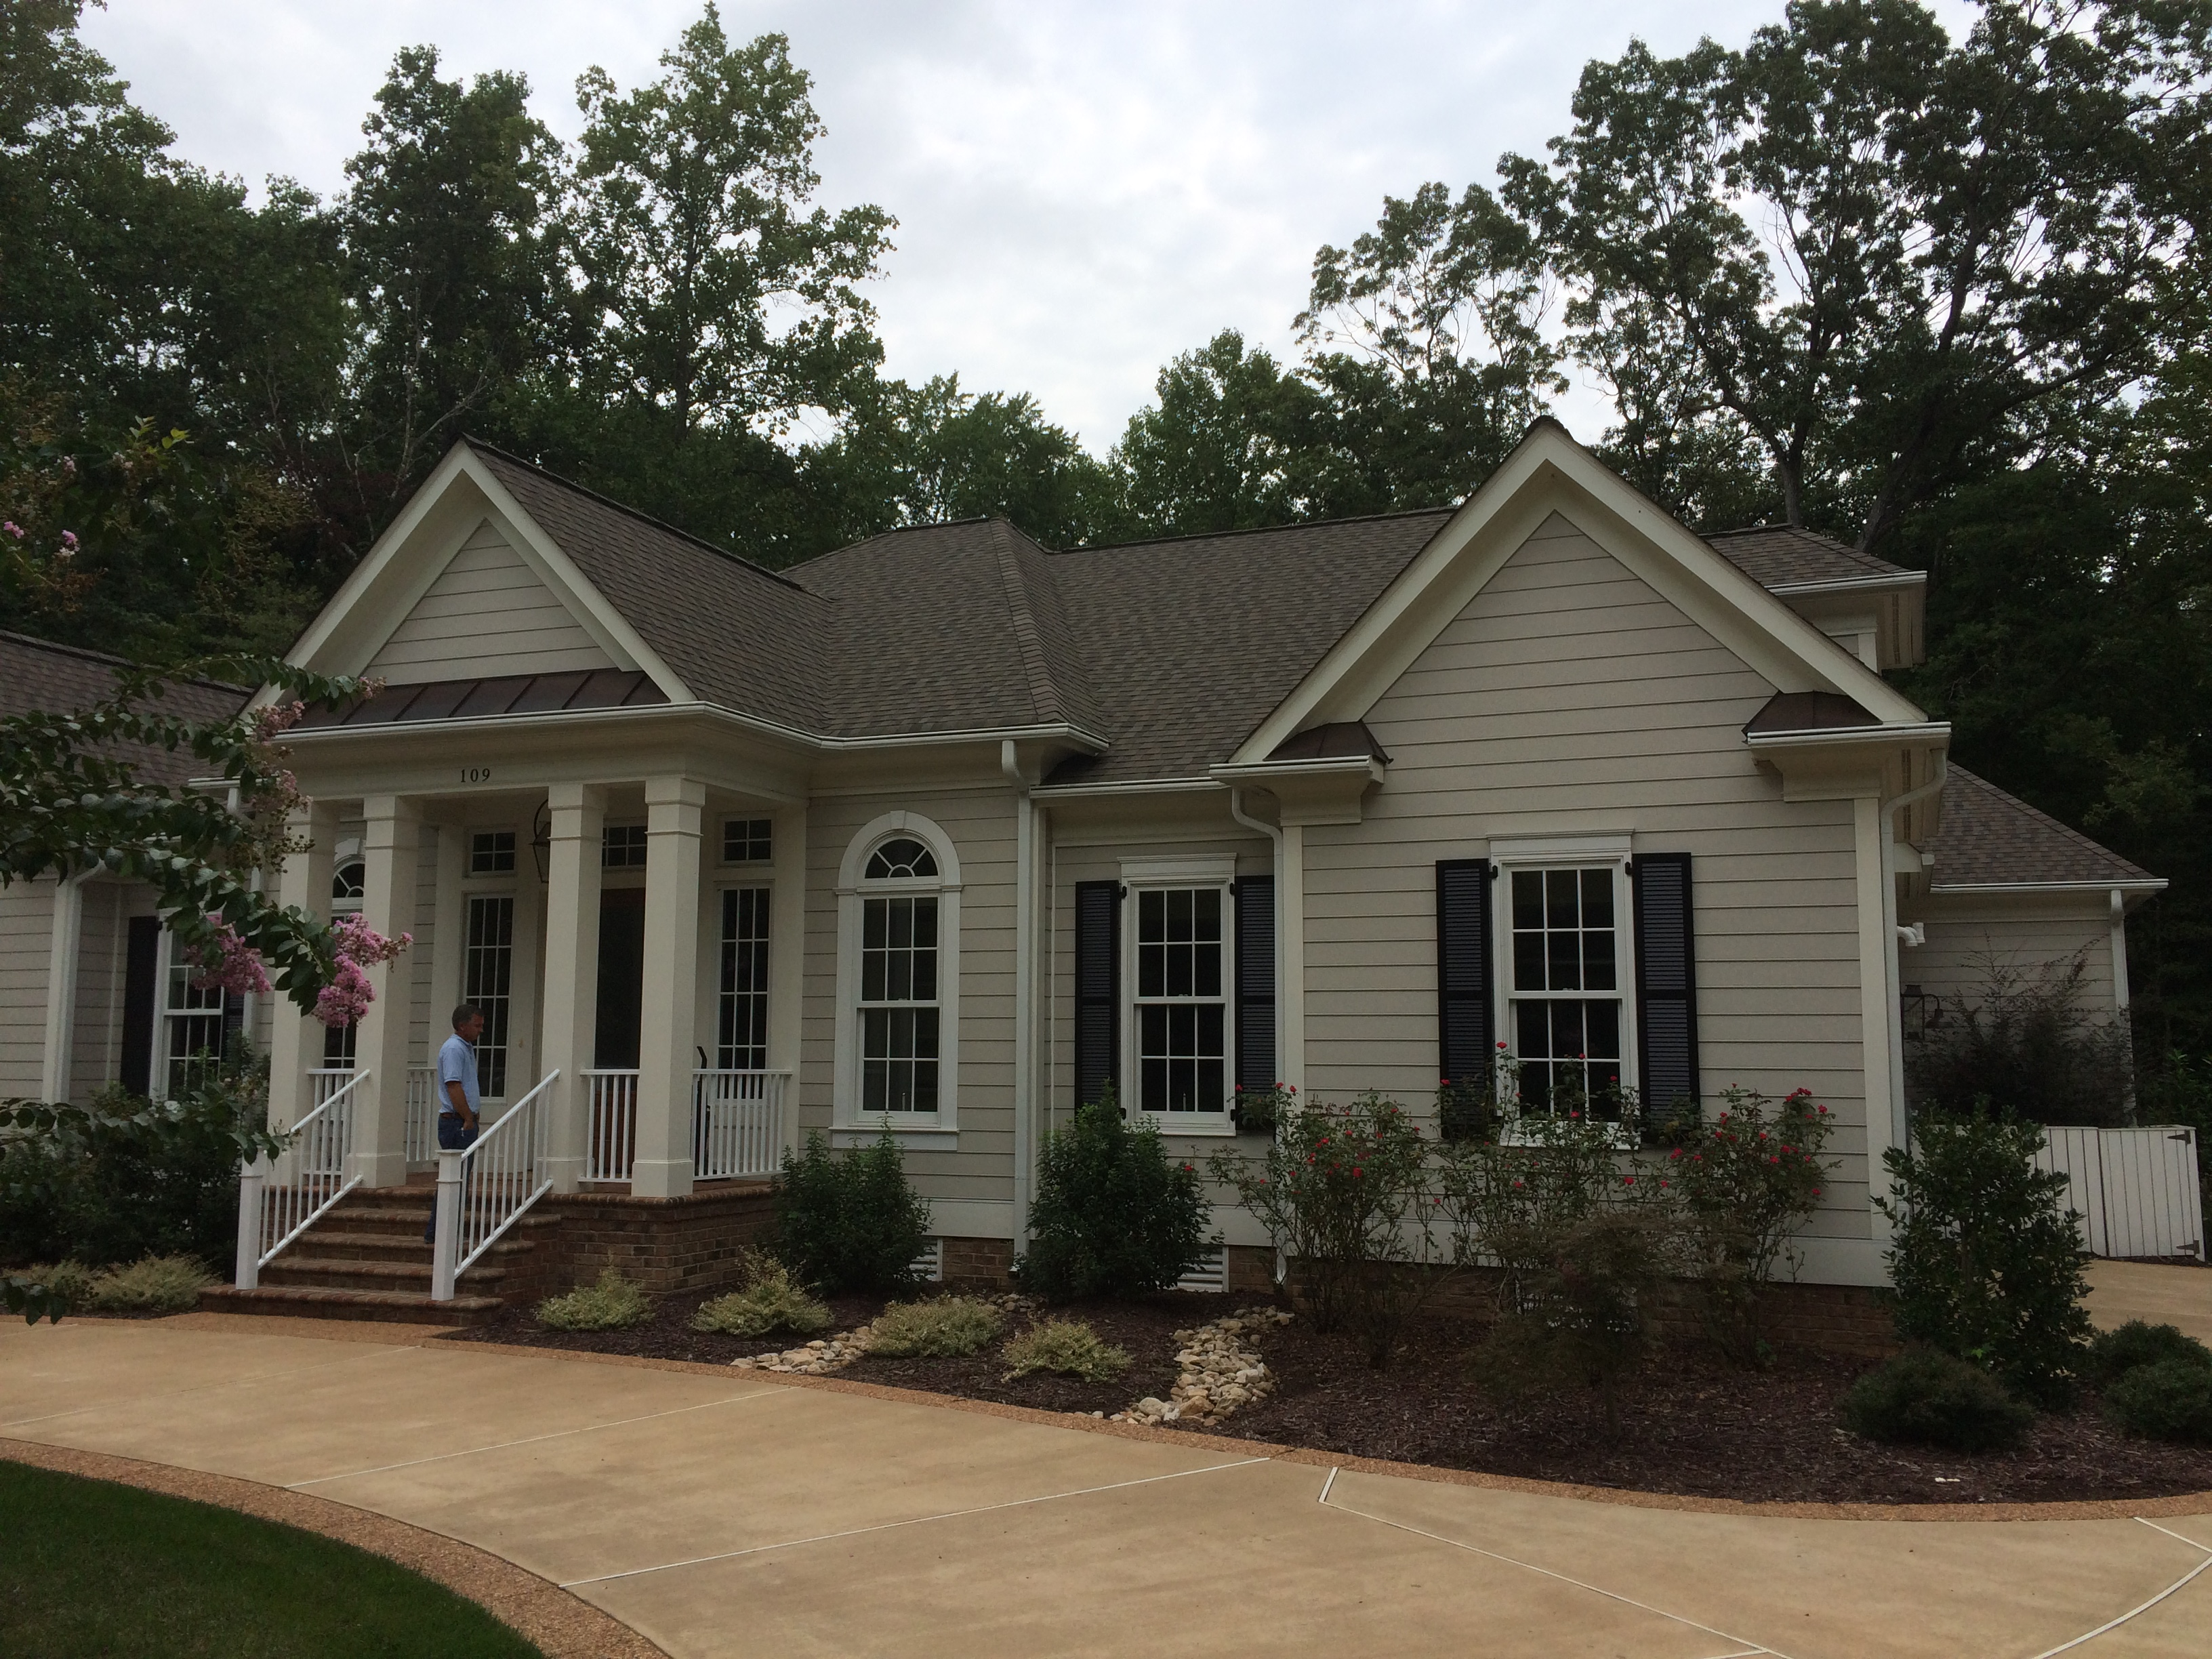 They Pride Themselves As Being One Of The Top Design Build Homebuilders In  Hampton Roads And Theyu0027re Excited About Starting Two New Homes In Liberty  Ridge.